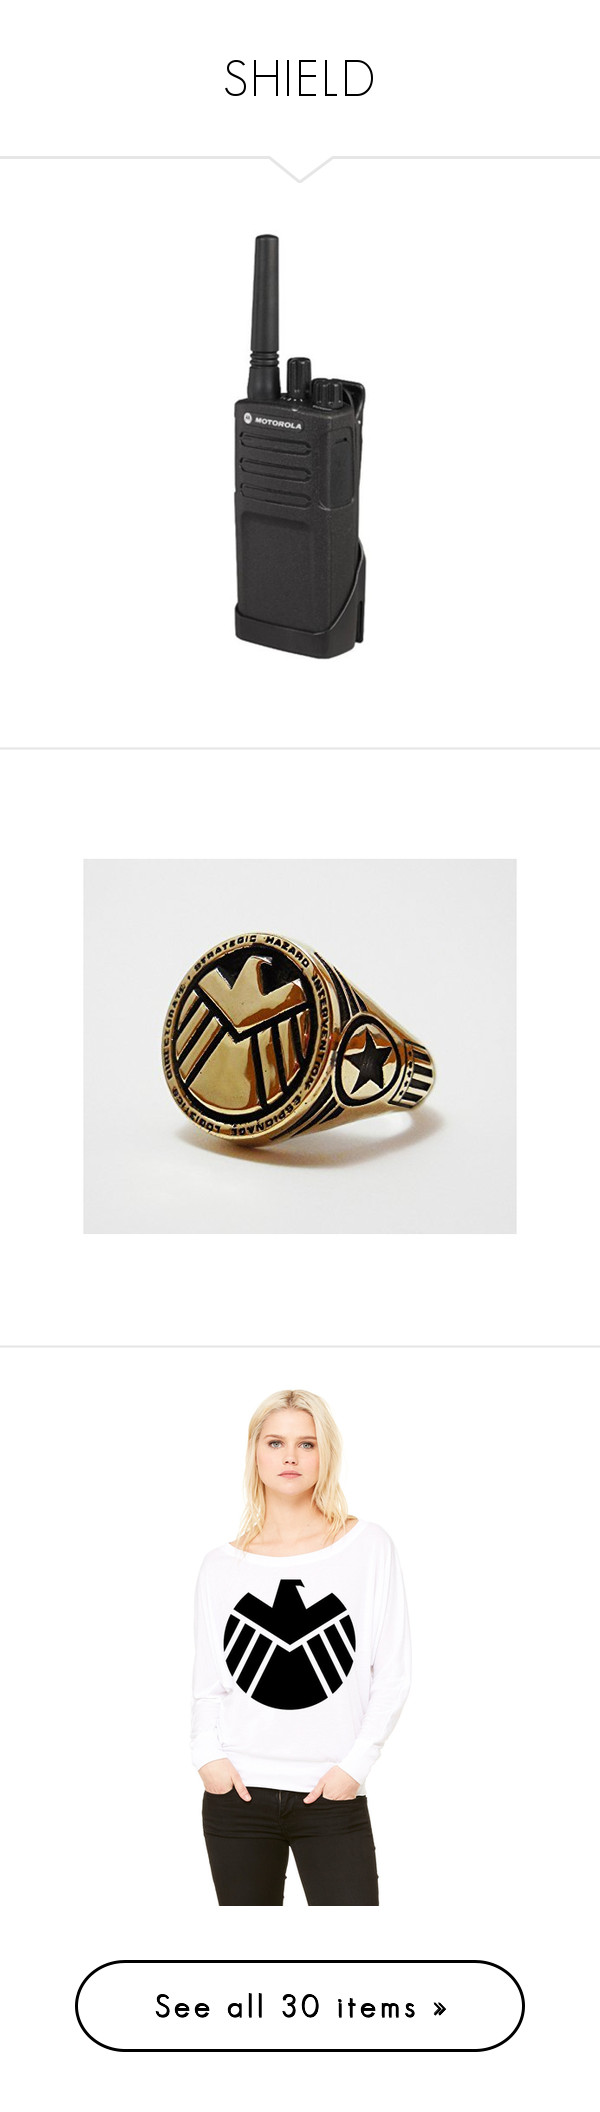 """""""SHIELD"""" by fantasy2fiction ❤ liked on Polyvore featuring fillers, jewelry, rings, the avengers, tops, t-shirts, long sleeve white t shirt, white t shirt, long sleeve t shirts and off the shoulder tee"""